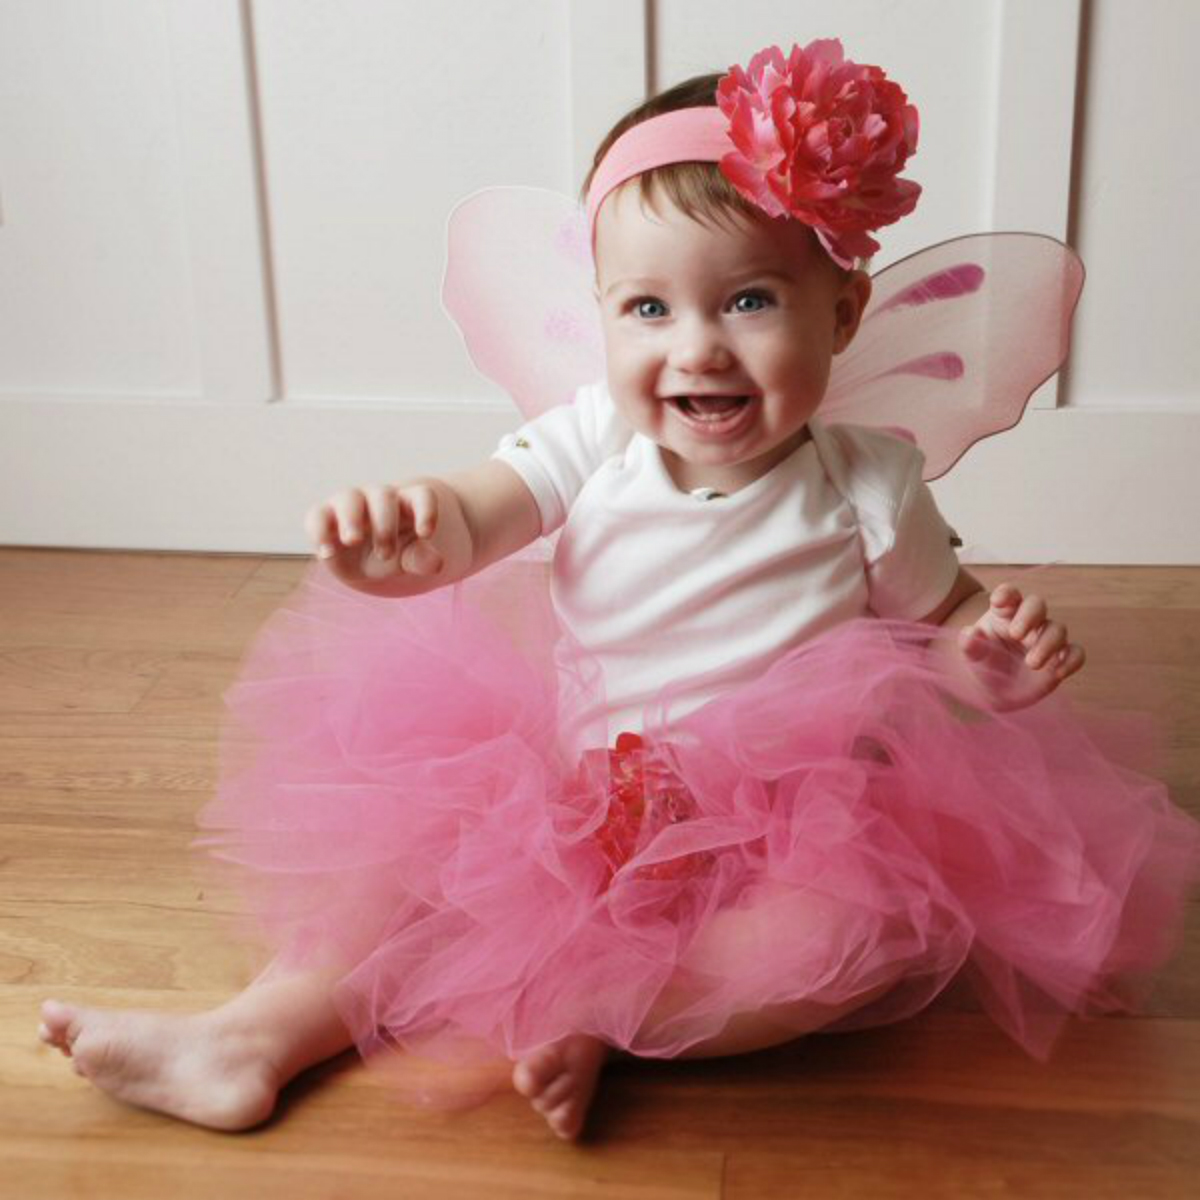 baby-girl-easter-dress-pink-tutu01